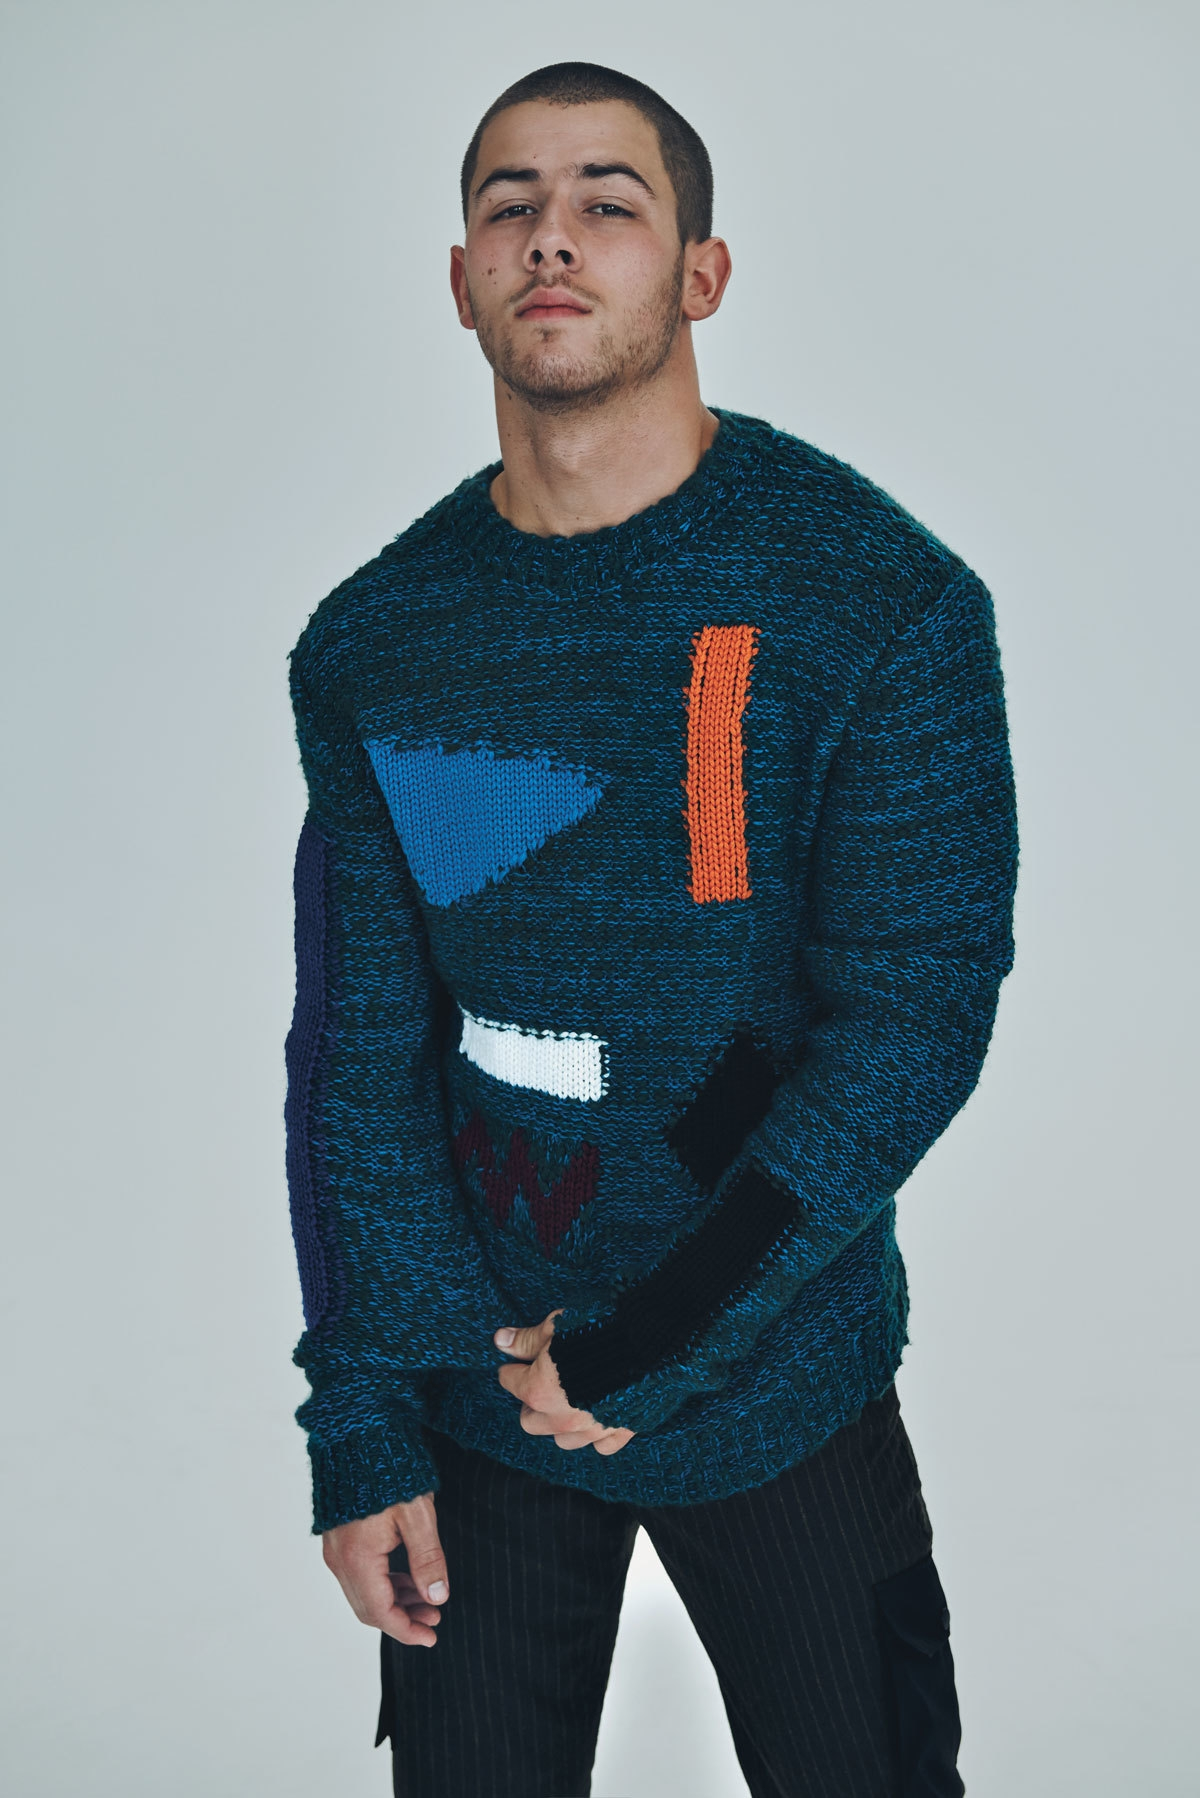 Nick Jonas by Beau Grealy